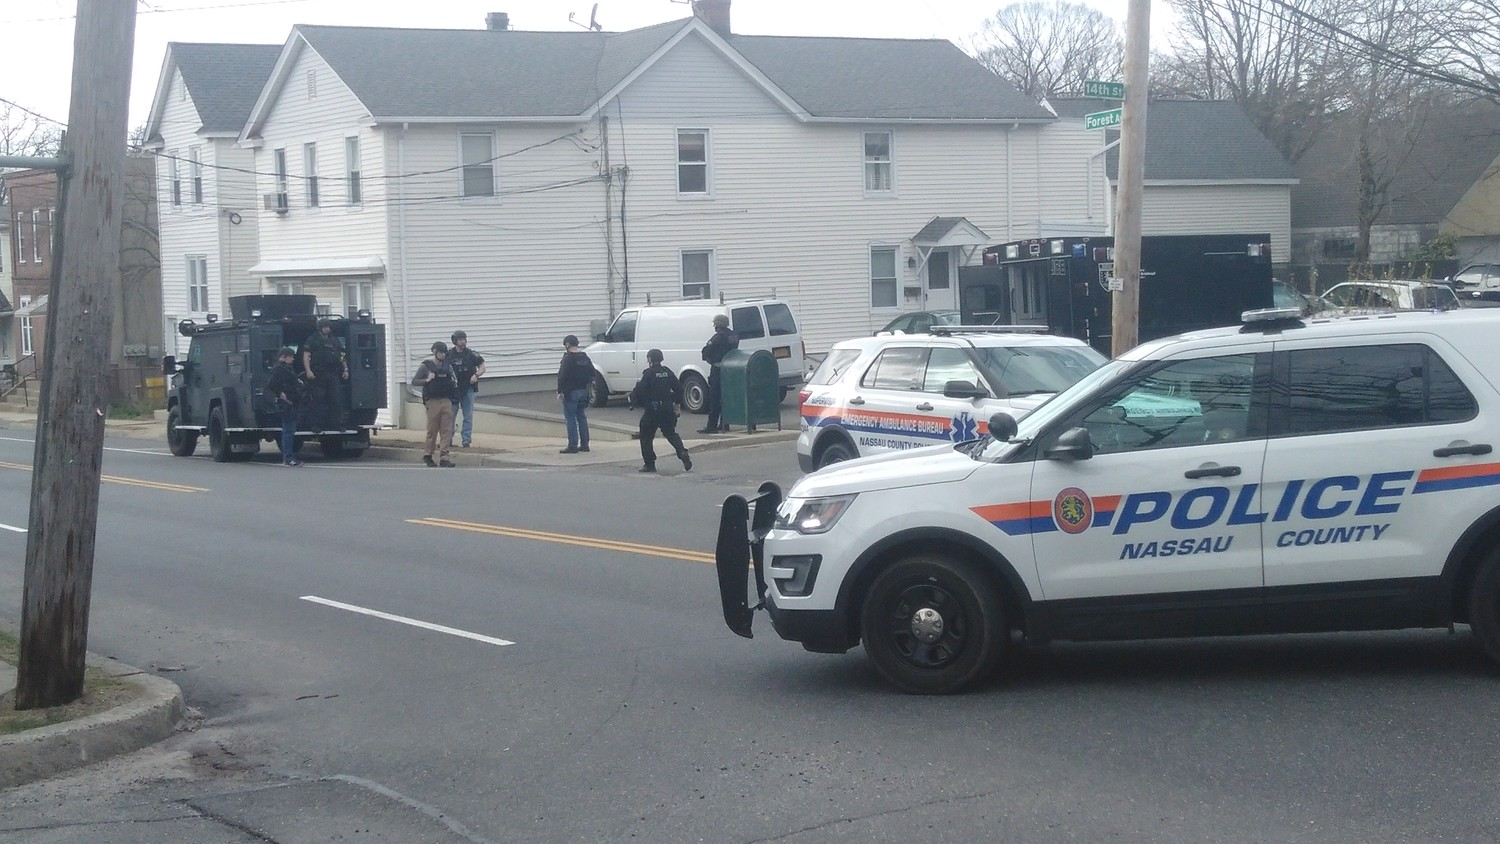 Nassau County police prepared to engage what they thought might be an armed suspect on the afternoon of Easter Sunday.